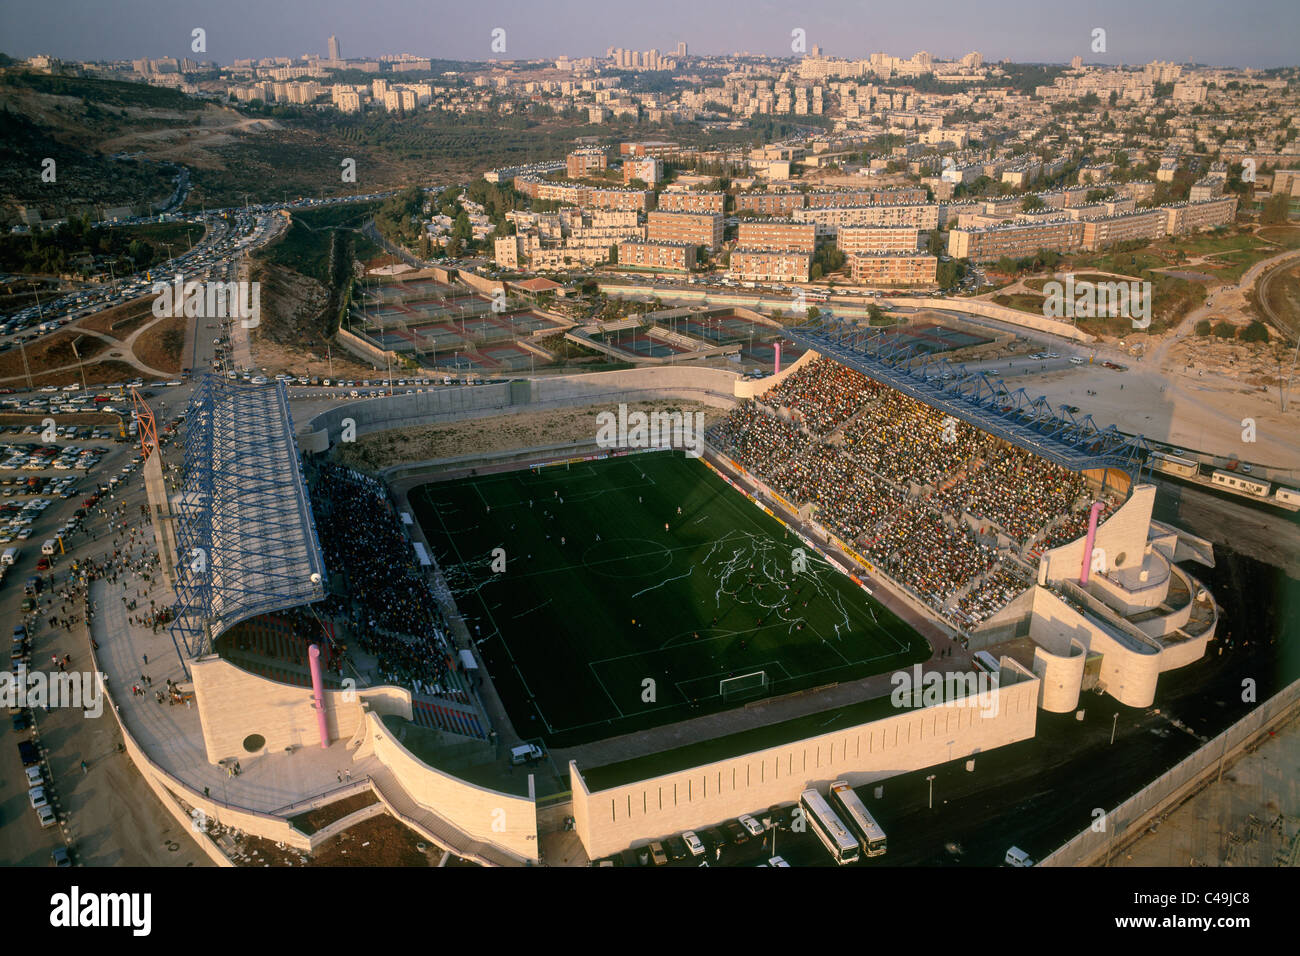 Aerial photograph of a soccer match in the Teddy Satdium in Jerusalem - Stock Image